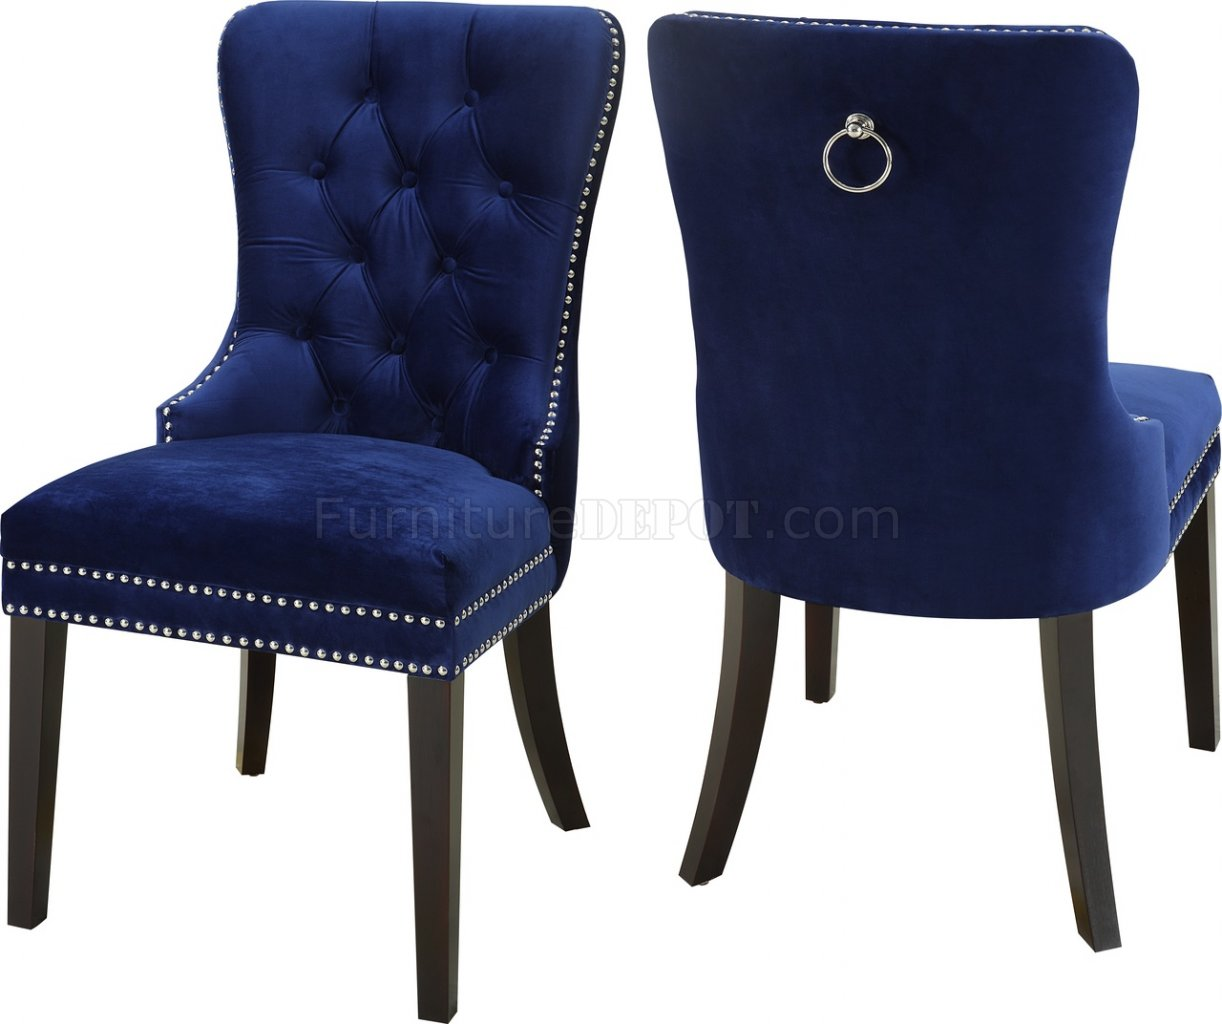 Navy Dining Room Chairs Nikki Dining Chair 740 Set Of 2 Navy Velvet Fabric By Meridian